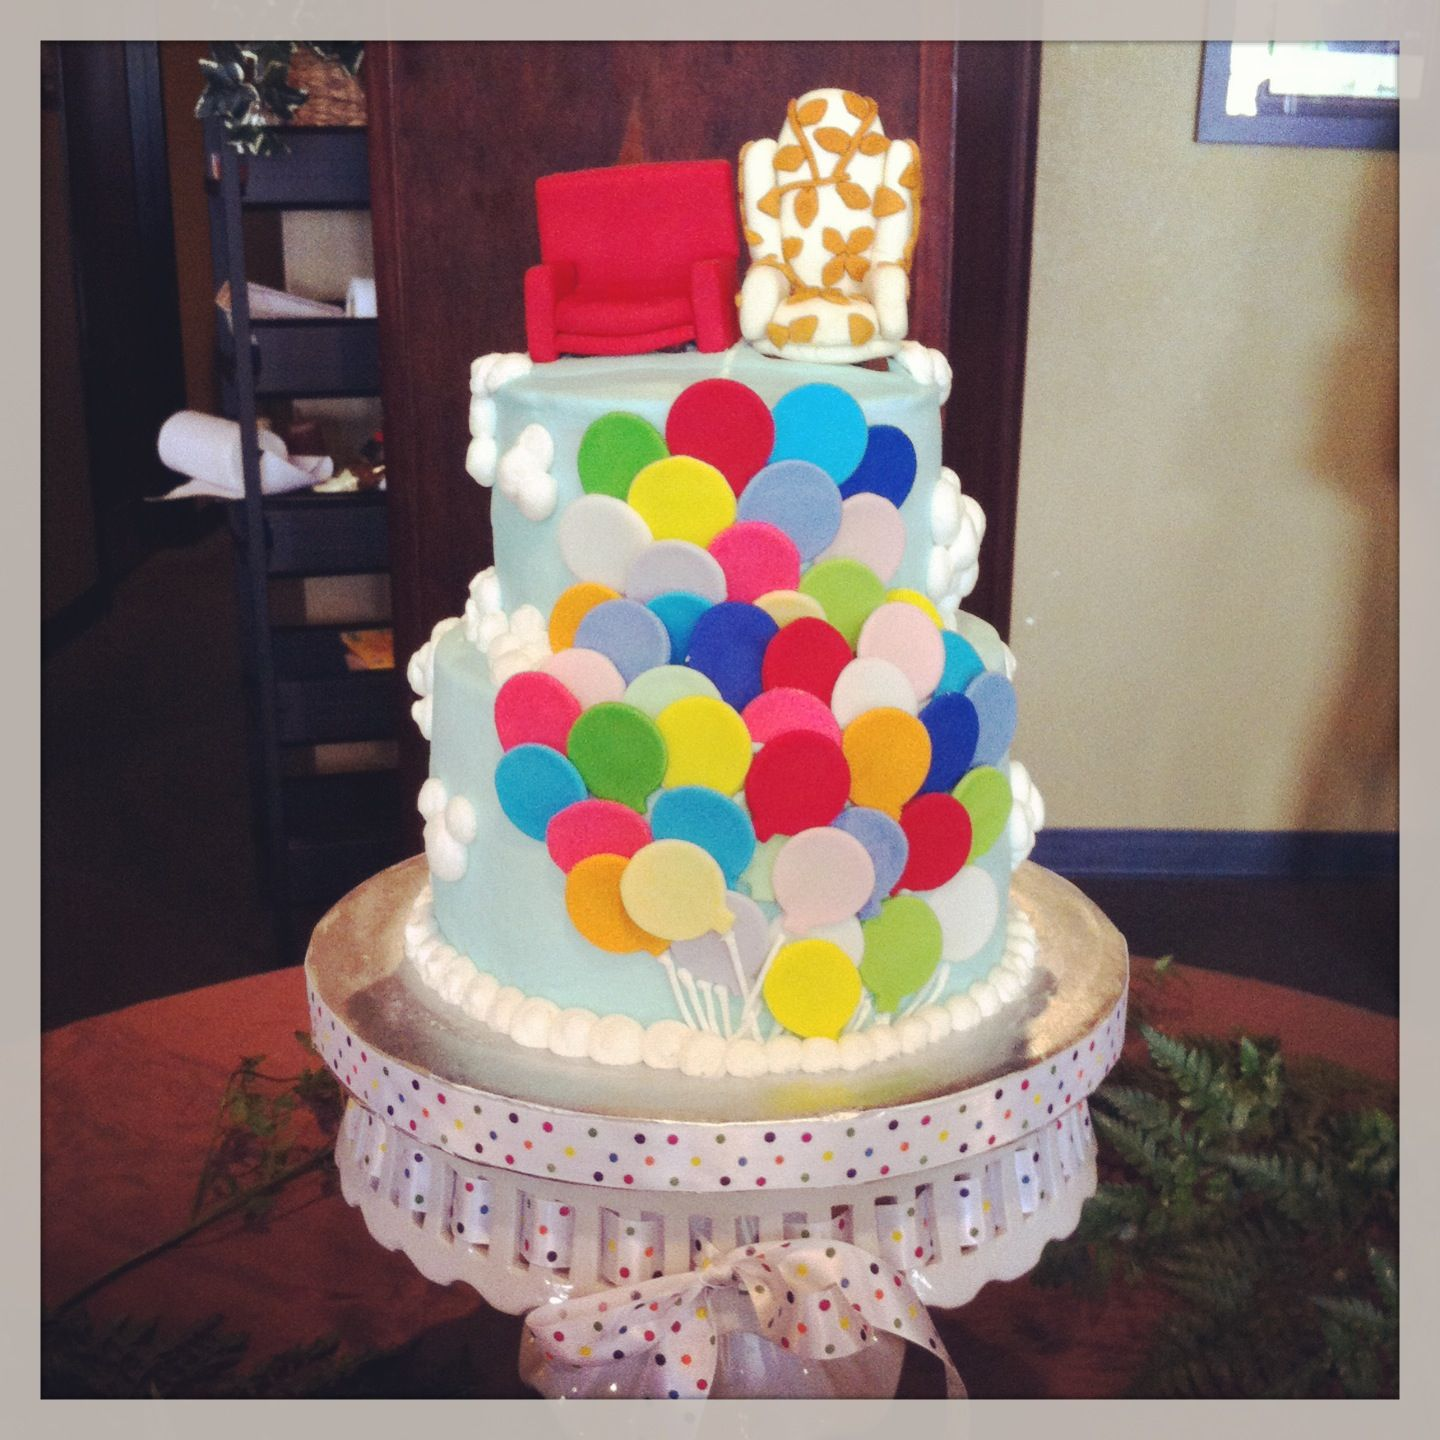 Engagement Party Idea Up Themed Wedding Cake From Disney Pixar Film With Miniature Carl And Ellies Chairs As A Topper